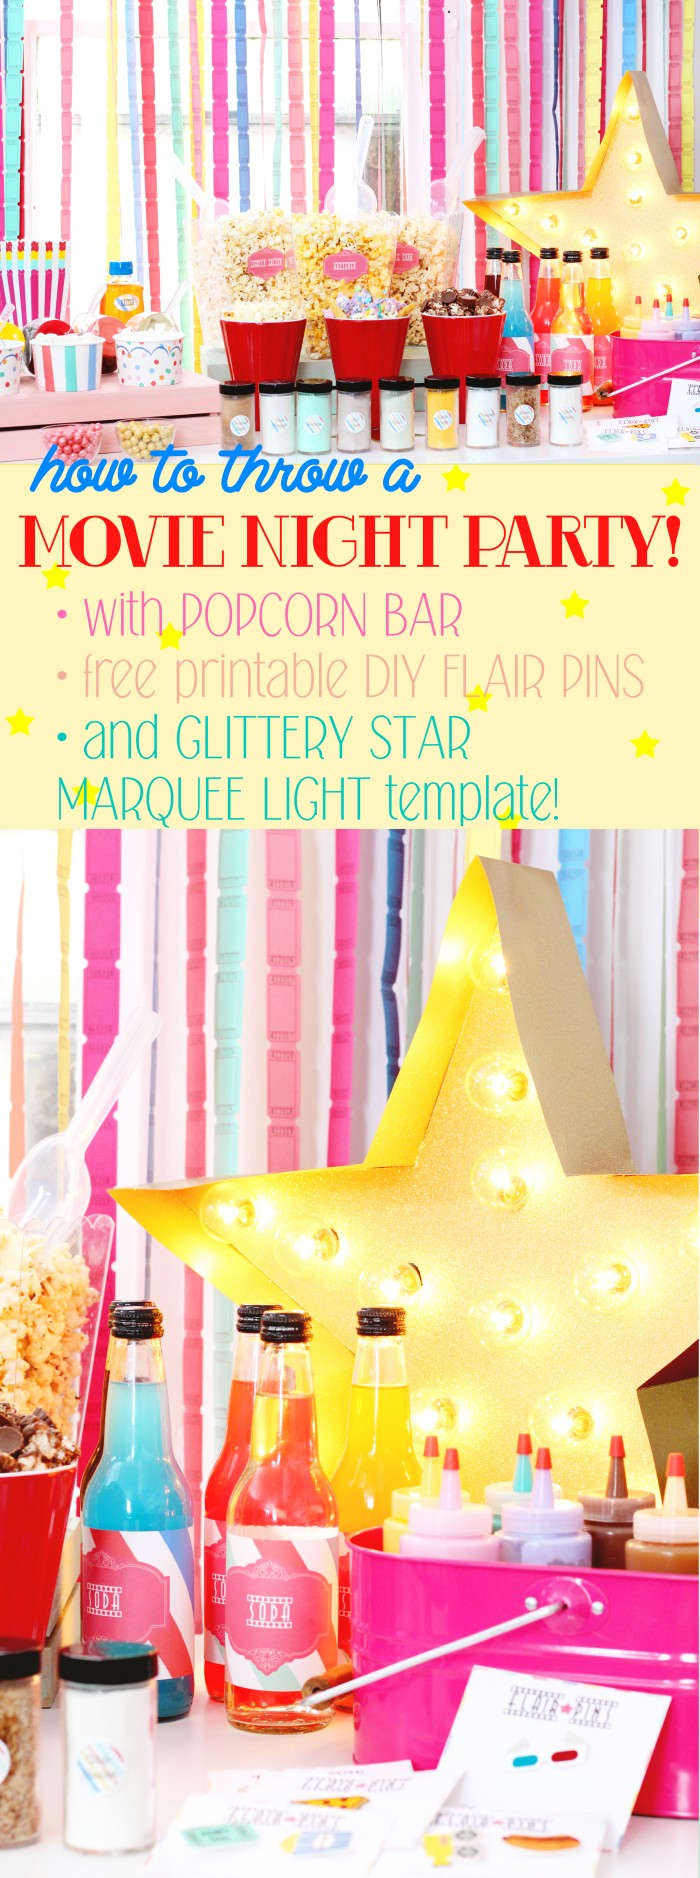 Throw a super colorful and fun movie night party for the whole family! DIYs, free printables, flair pins, and movie lights!